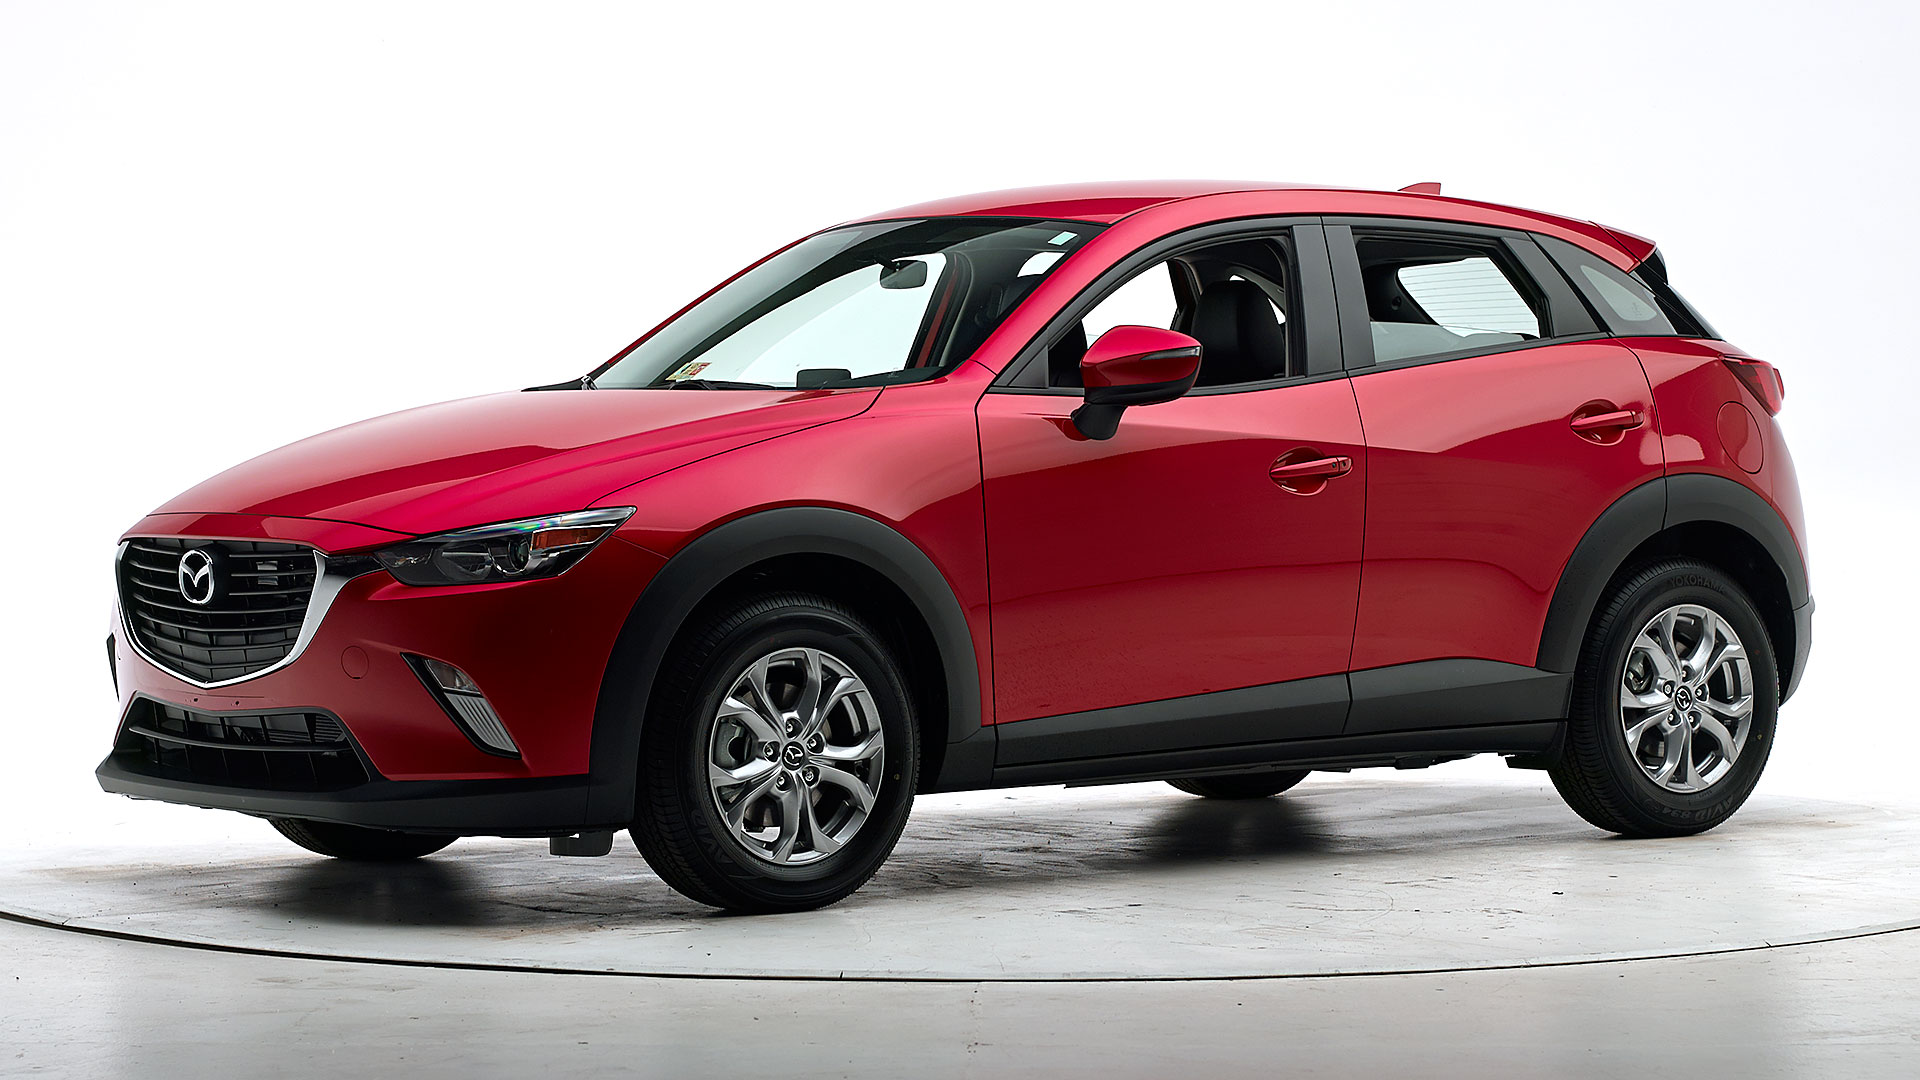 2017 Mazda CX-3 4-door SUV